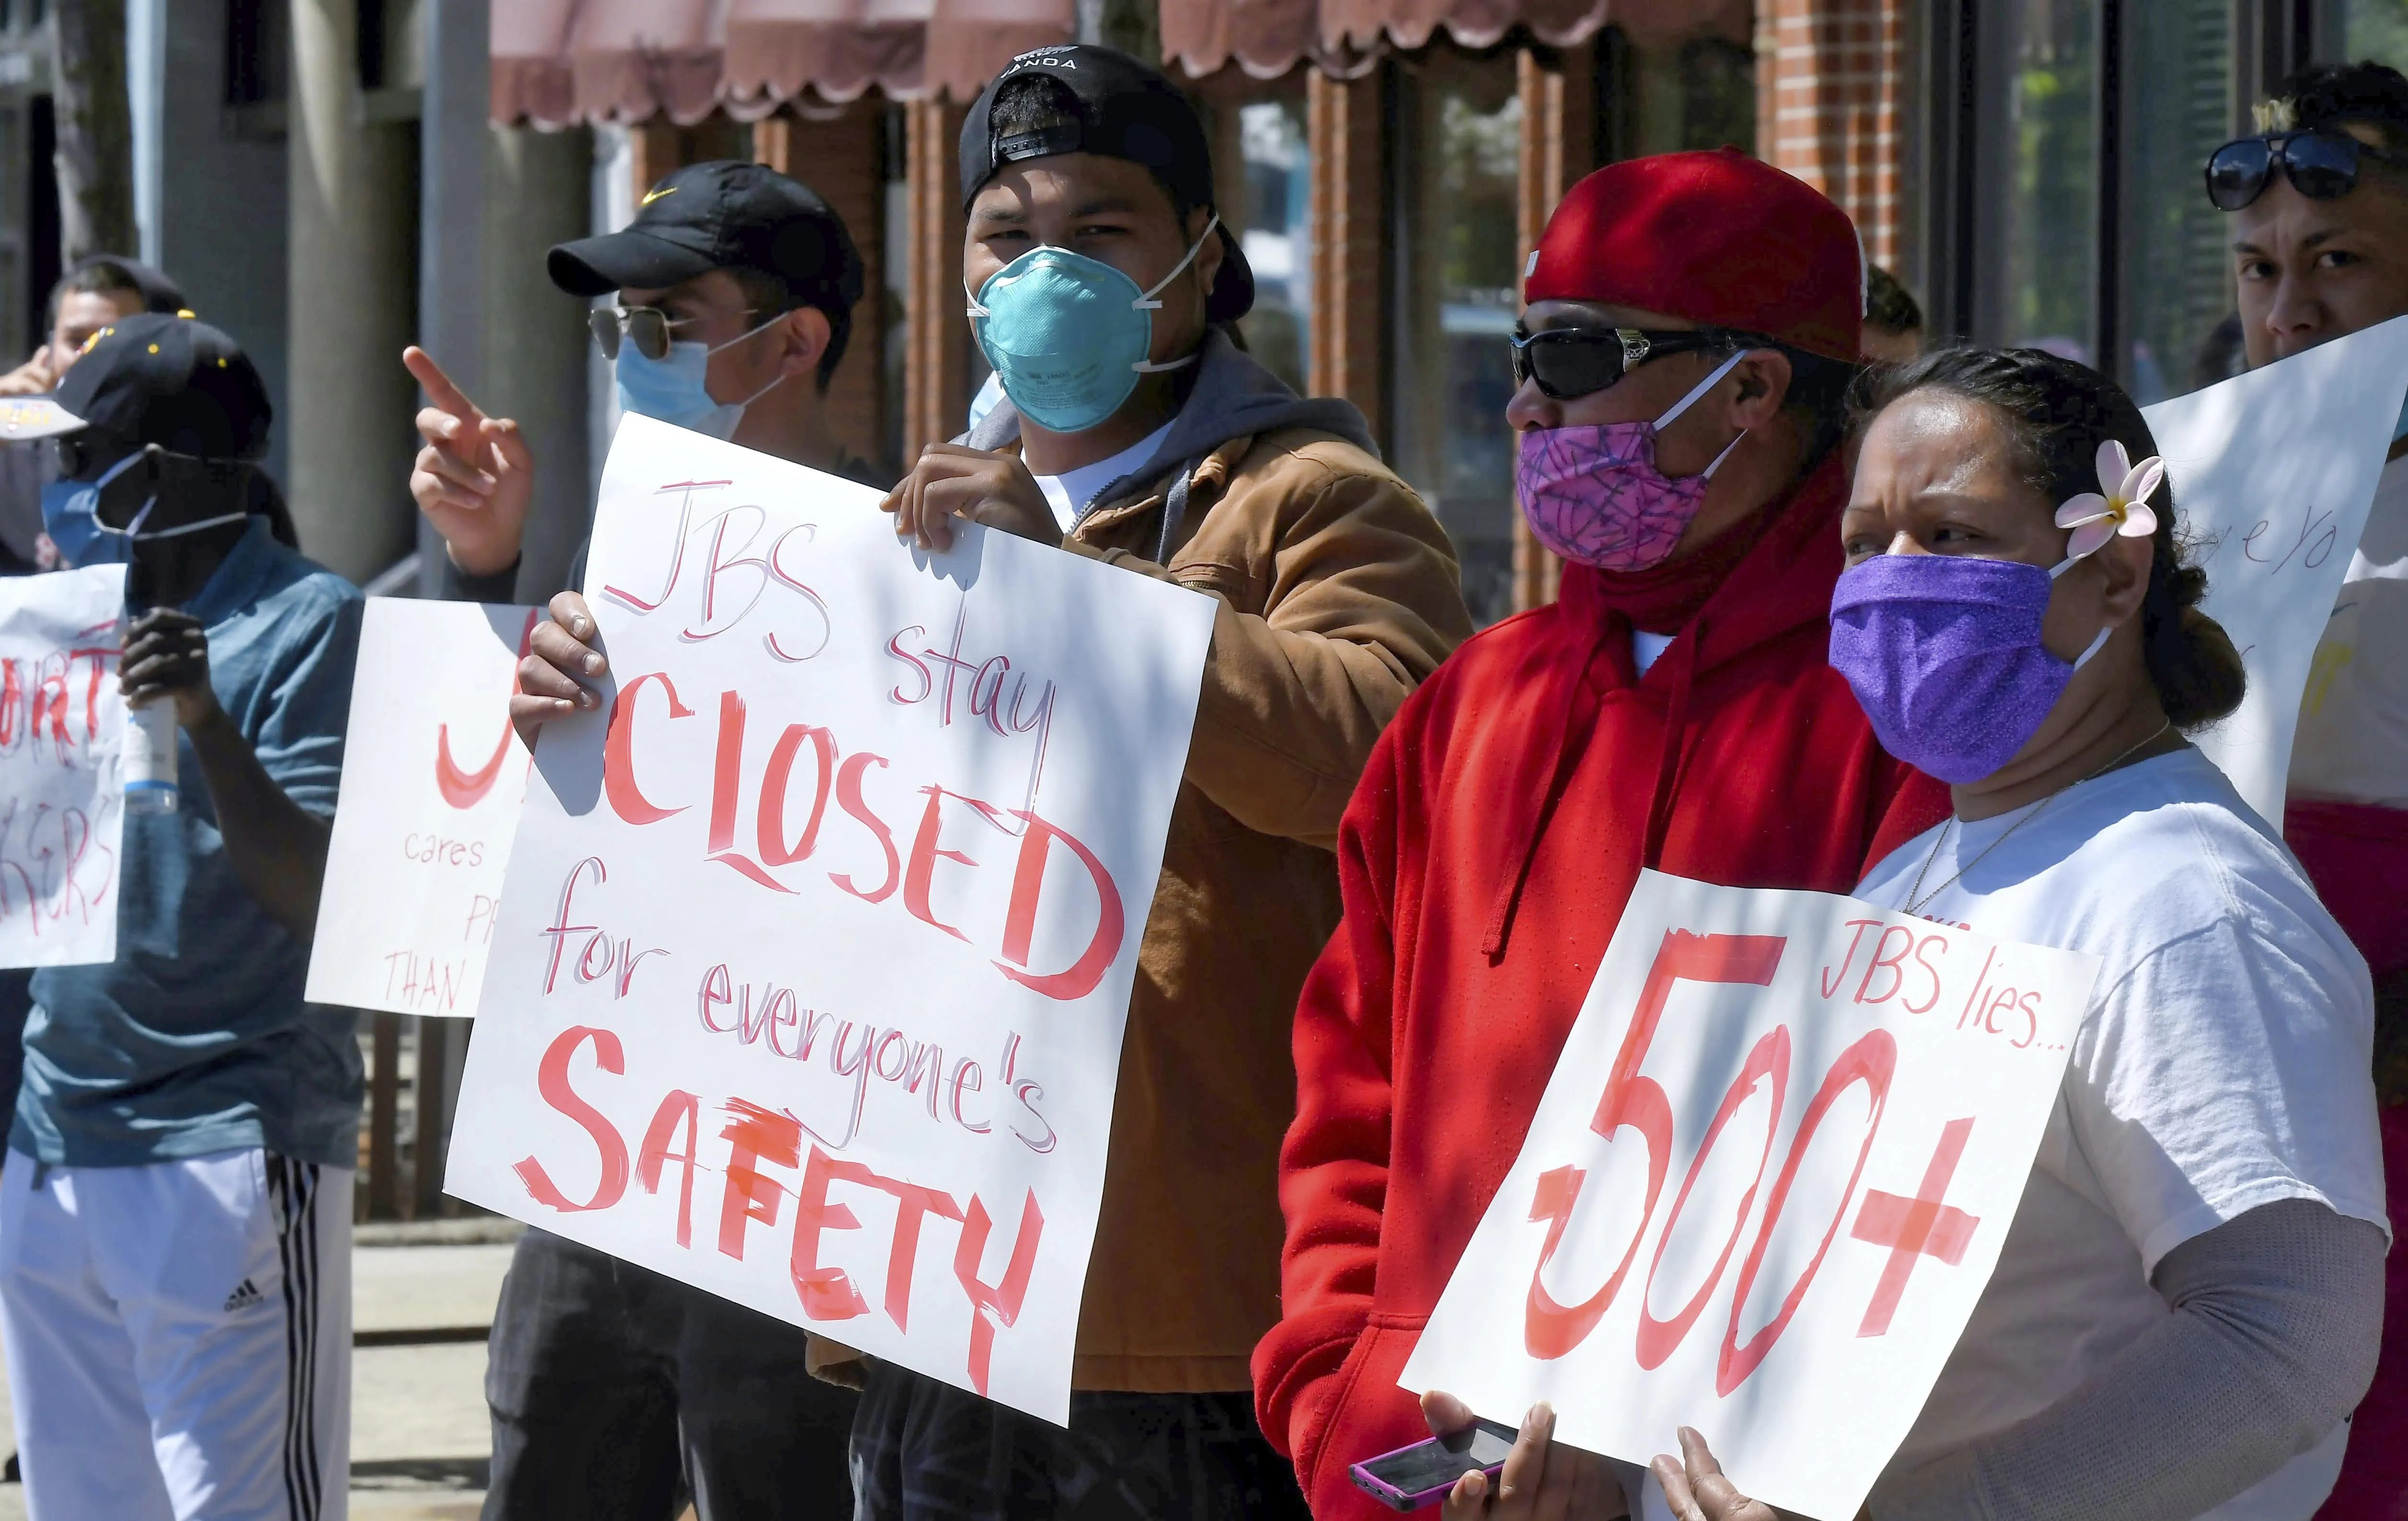 Workers at the JBS USA meatpacking plant protest in Logan, Utah, the company's handling of a coronavirus outbreak that has resulted in nearly 300 confirmed cases.